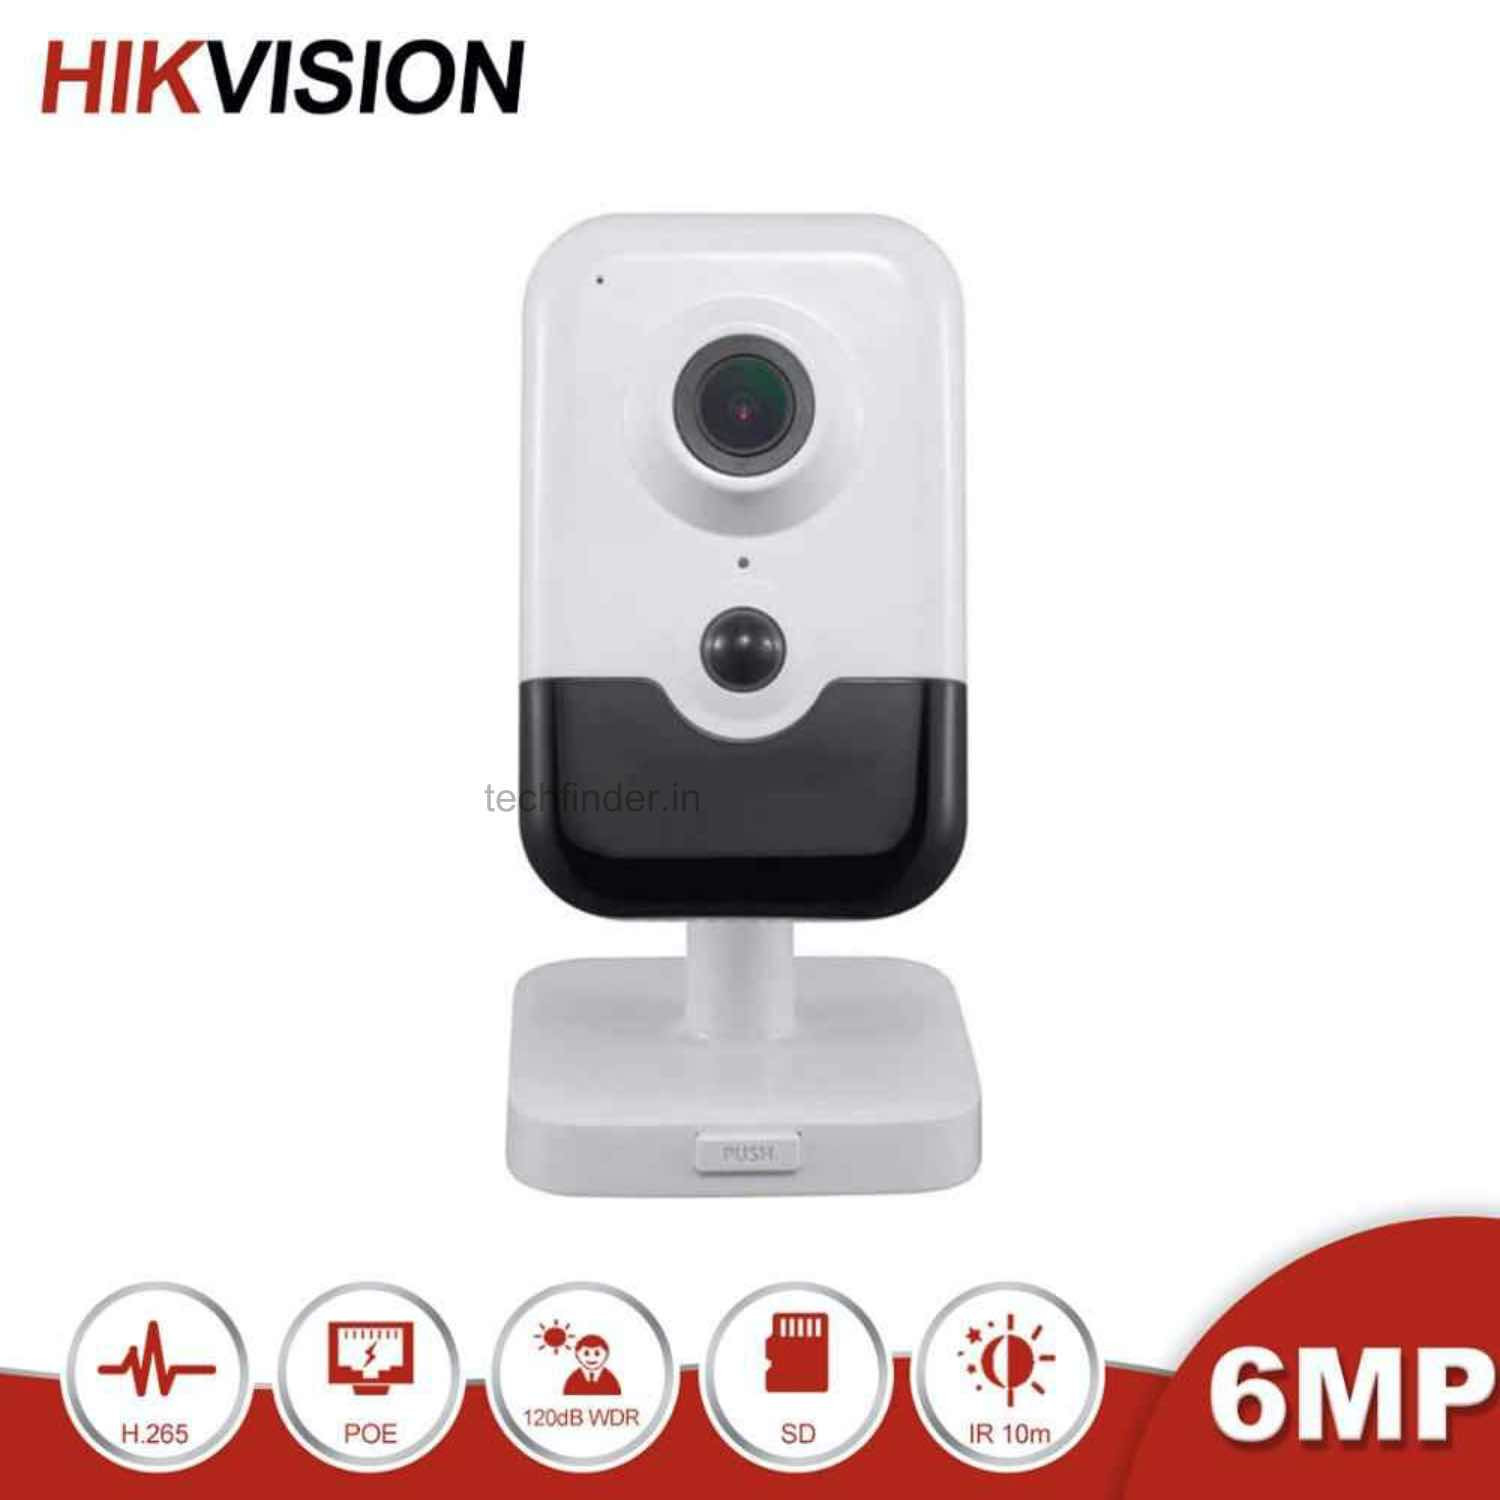 Hikvision DS-2CD2463G0-I(W) 6MP IR Smart Wi-Fi Fixed Cube Ip Camera